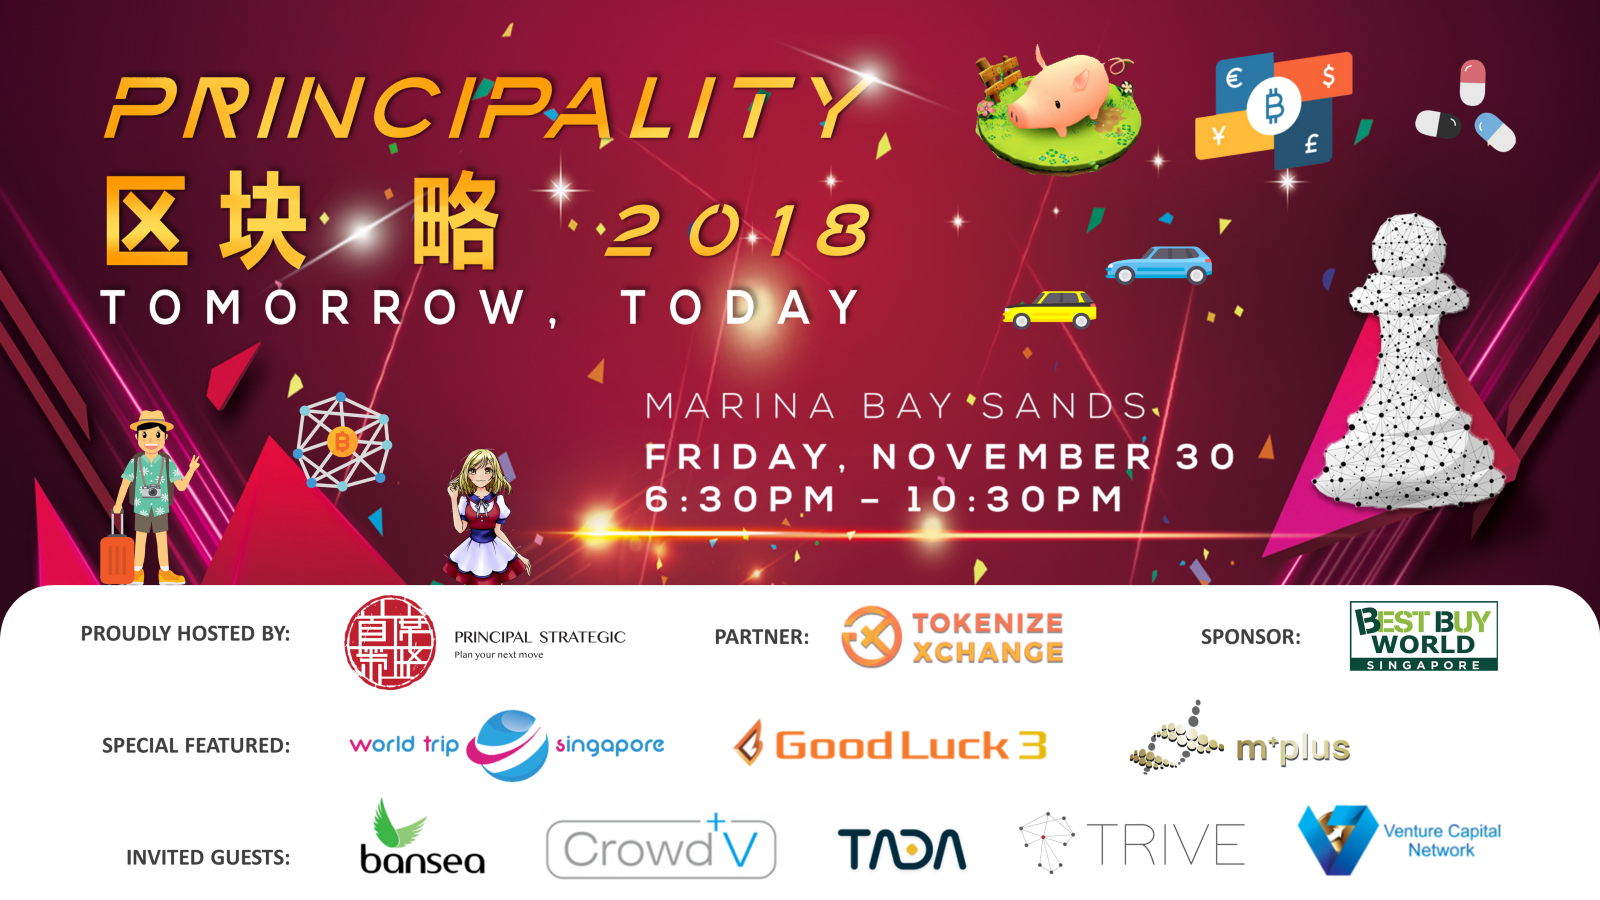 /principality-2018-blockchain-conference-recap-4733a34bcd47 feature image